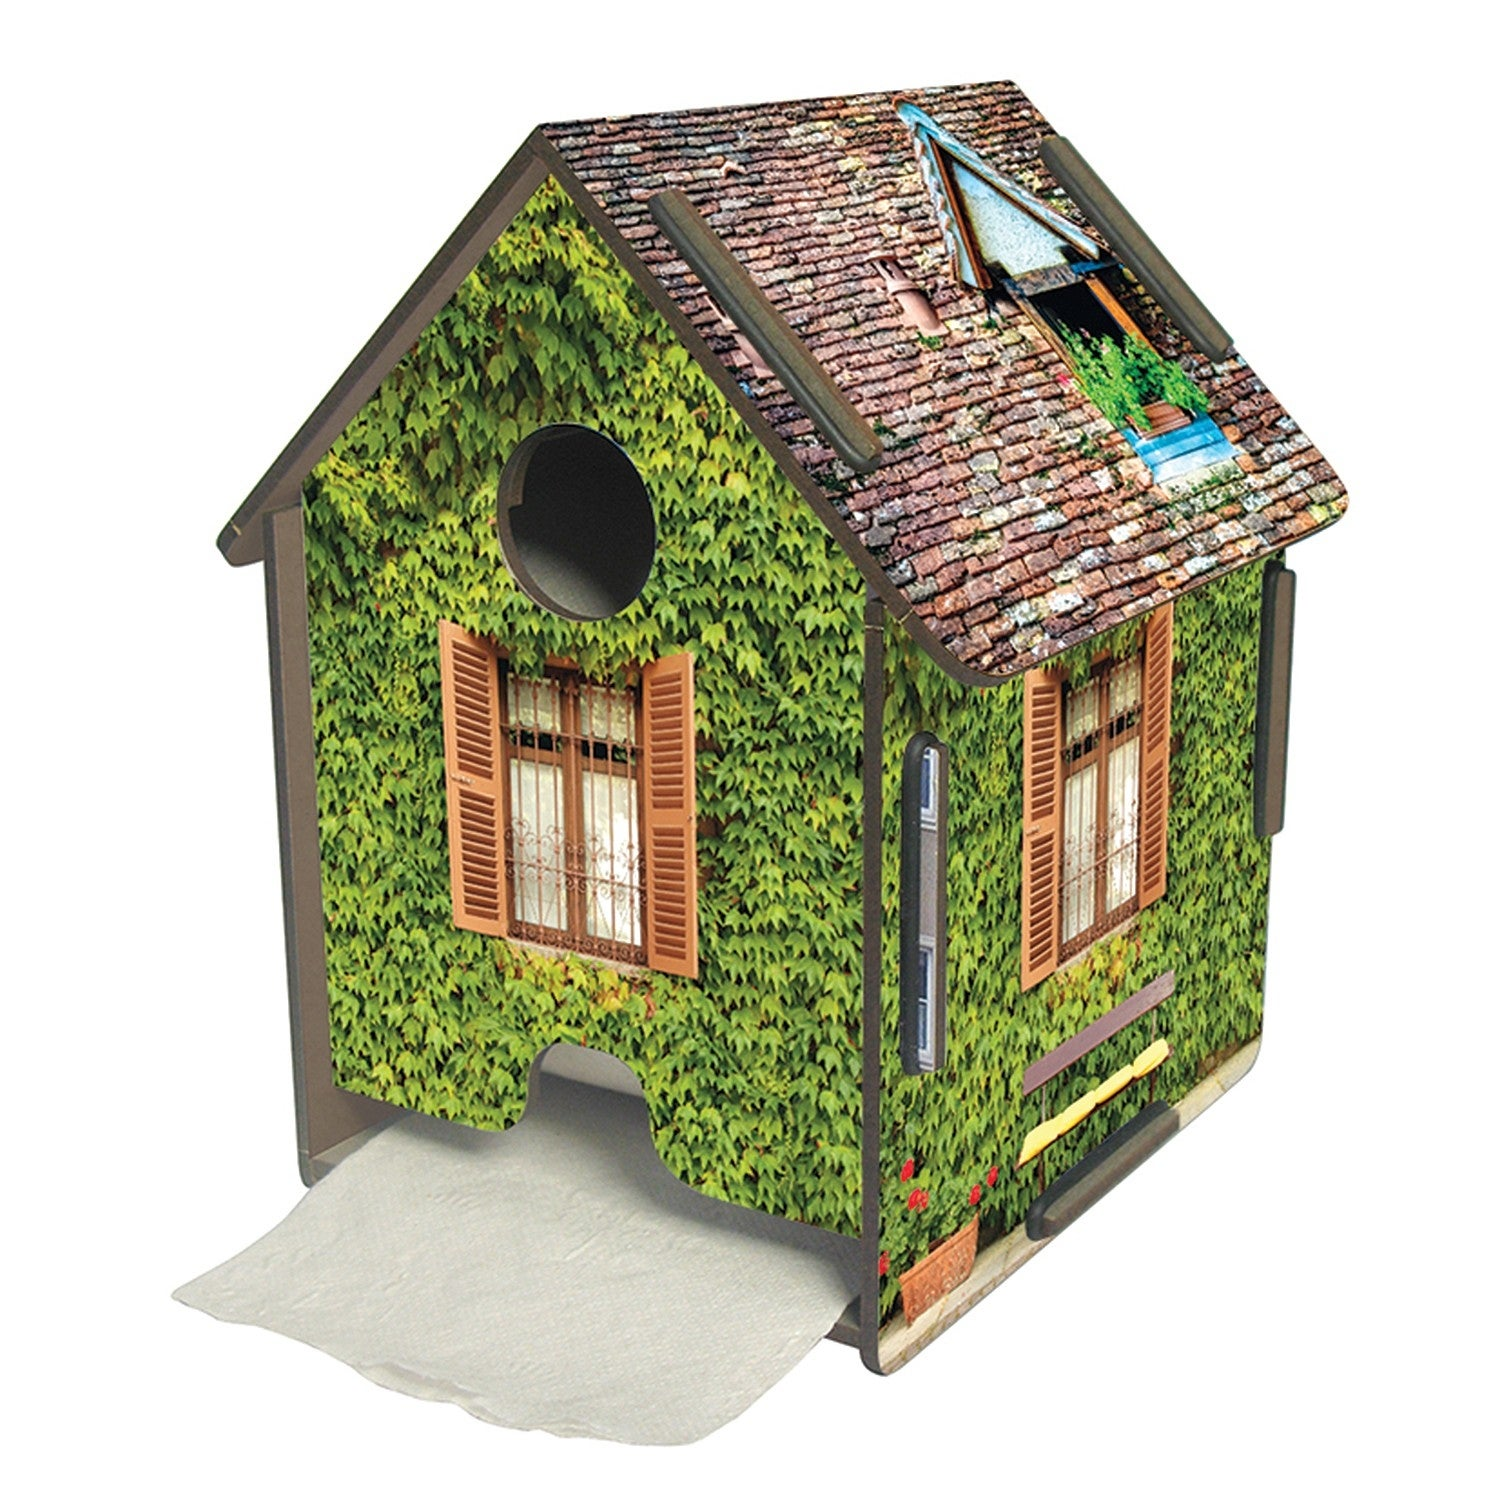 Shop Werkhaus Design Produktions Gmbh Ivy Toilet Paper House Wooden Novelty Bathroom Accessory 7 X 5 75 Overstock 28519850